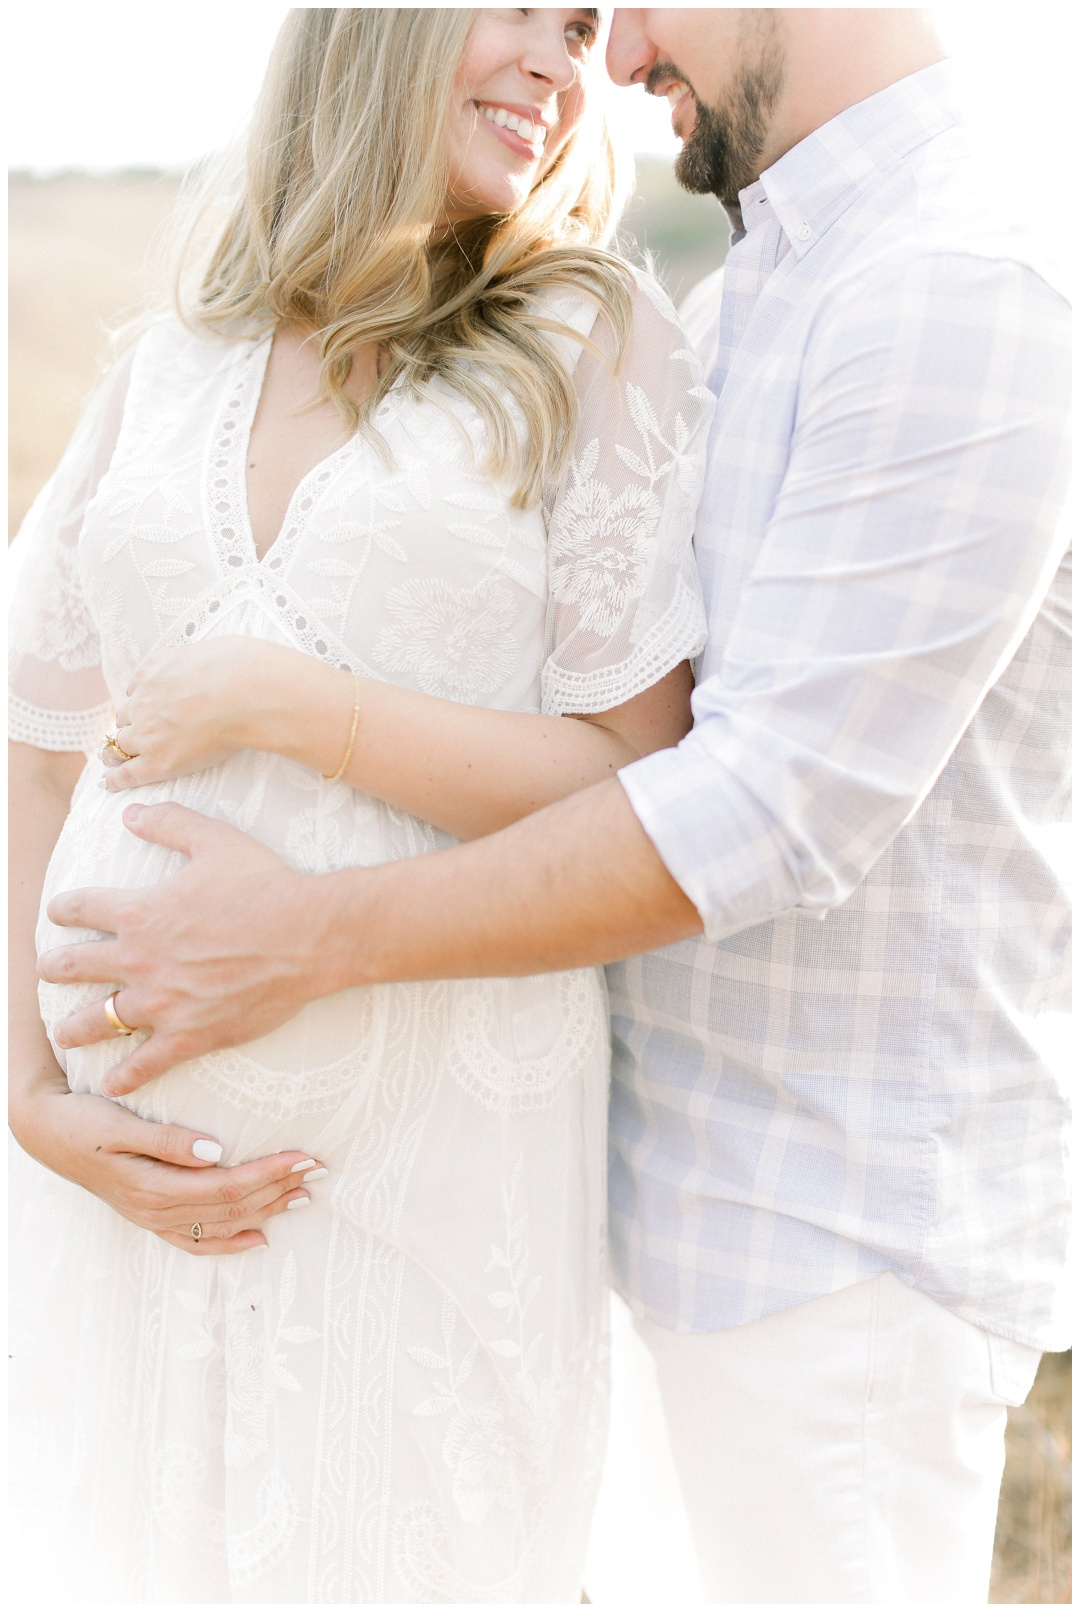 Newport_Beach_Maternity_Photographer_Newport_Beach_Maternity_Photography_Orange_County_Photography_Cori_Kleckner_Photography_Orange_County_Quail_Hill_Photography_The_Ritz_Carlton_Laguna_Niguel_Resort_ Maternity_Session__1812.jpg